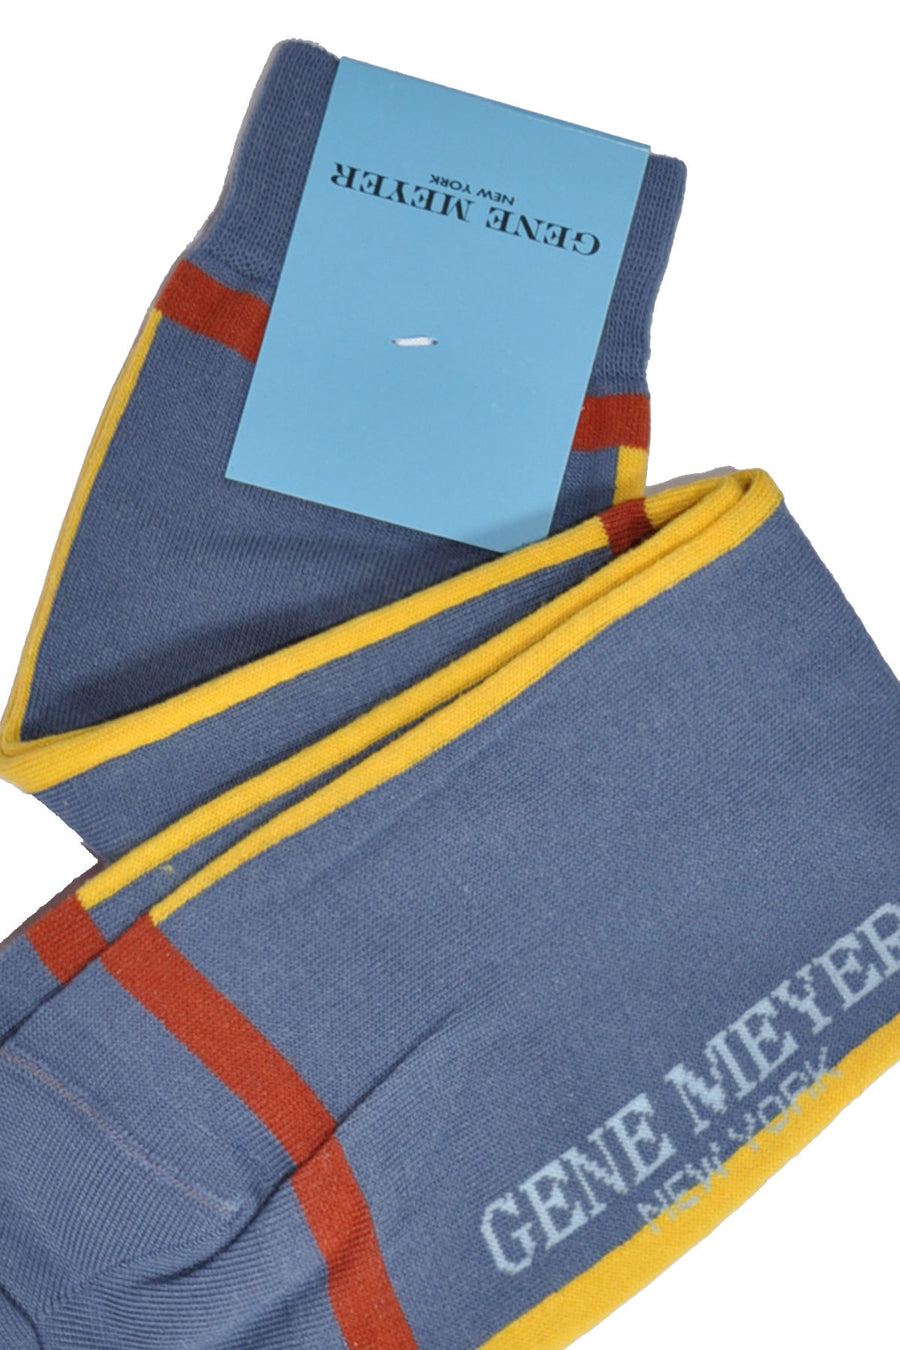 Gene Meyer Socks Gray-Blue Yellow Stripe